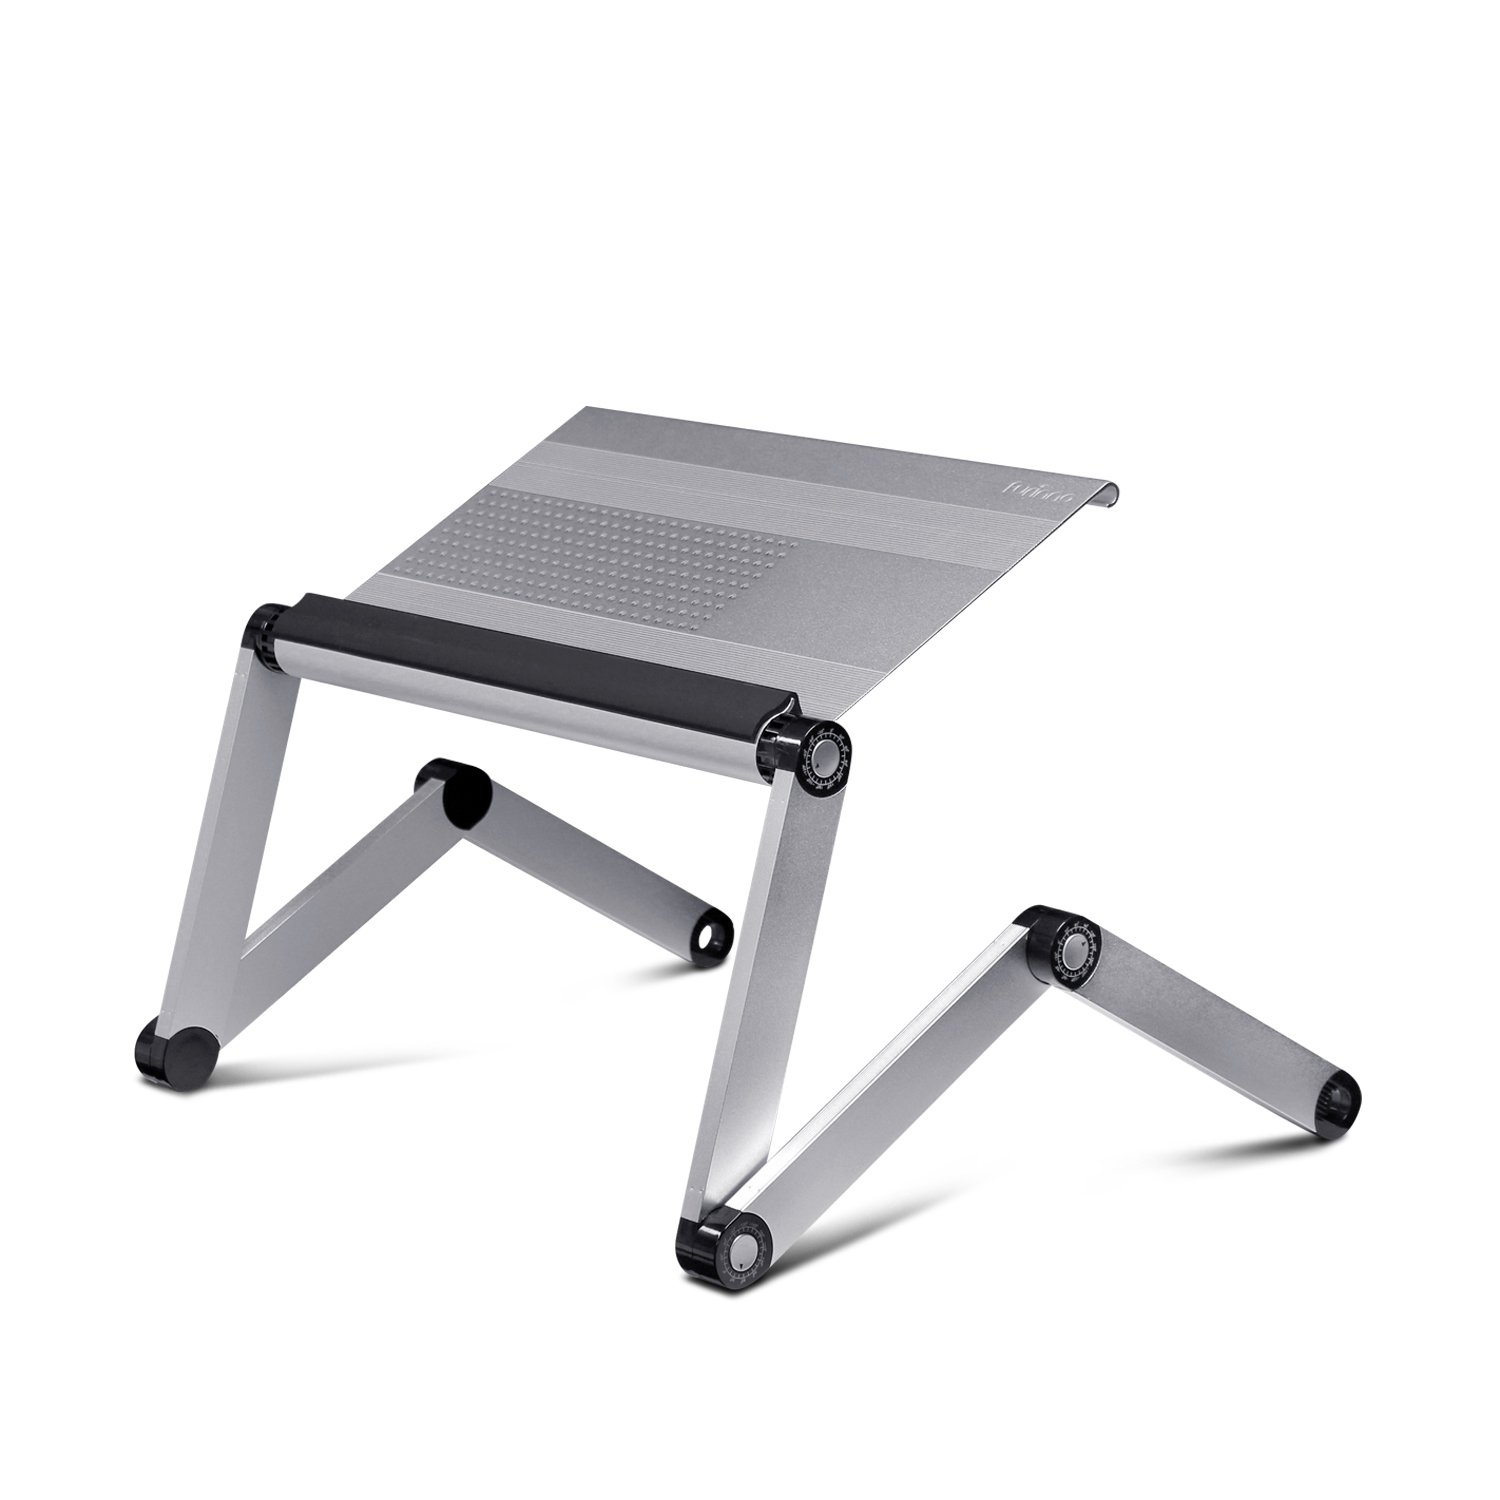 Laptop bed table tray - Amazon Com Furinno A6 Silver Ergonomics Aluminum Vented Adjustable Laptop Portable Bed Tray Silver Kitchen Dining